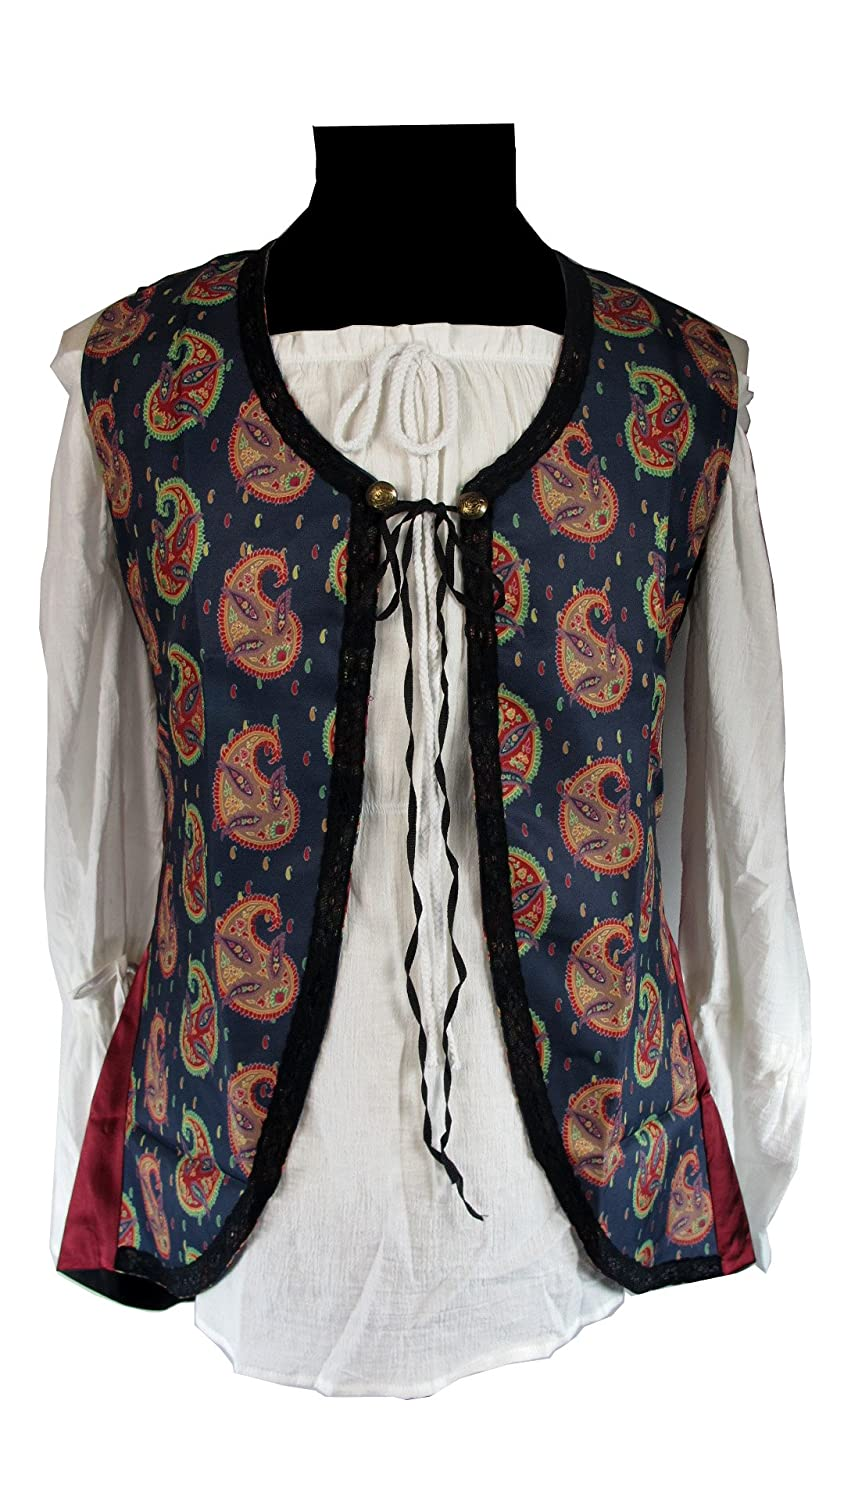 Deluxe Angelica Lady Pirate Vest - DeluxeAdultCostumes.com